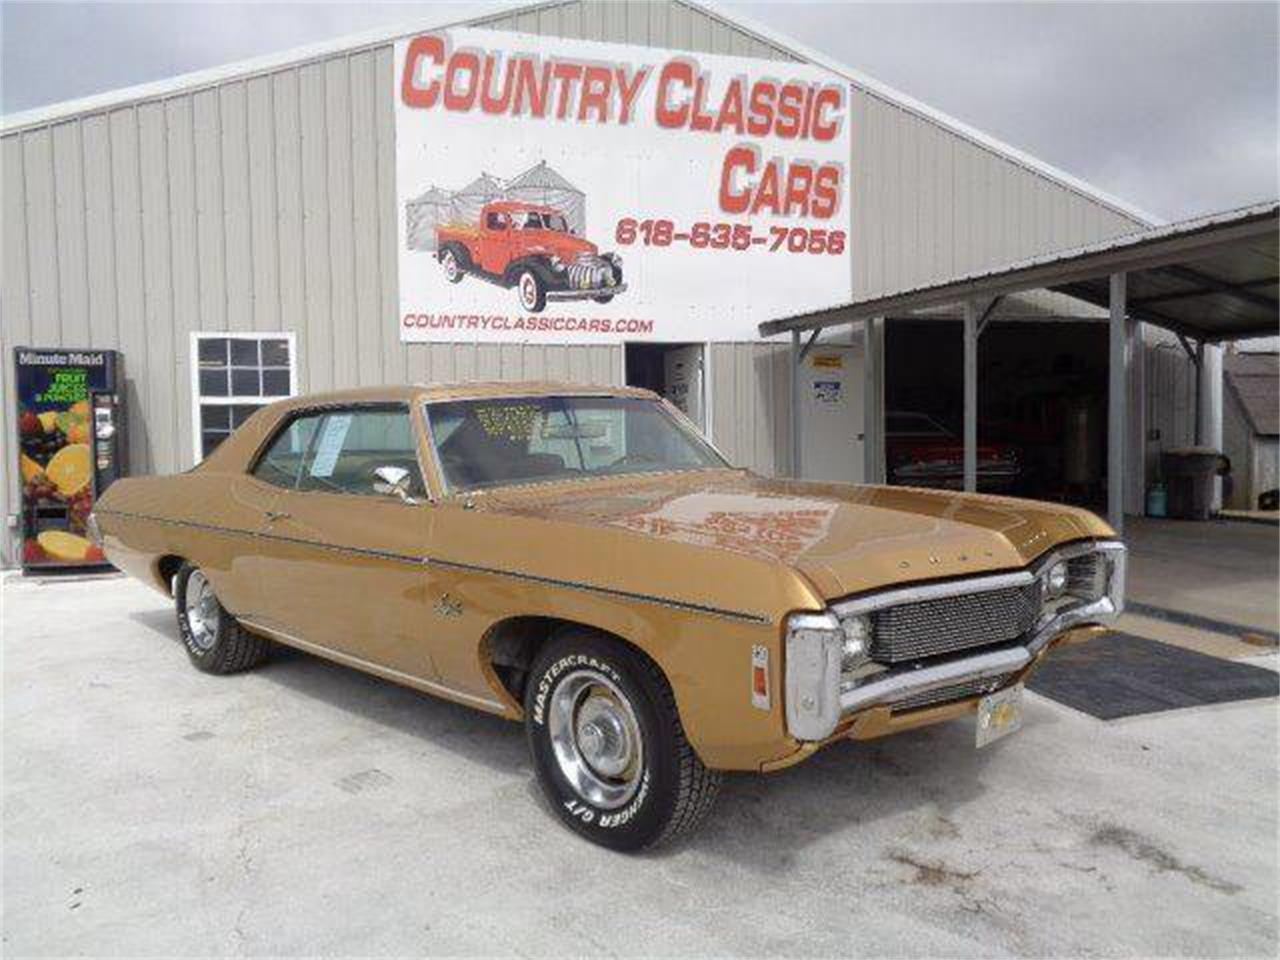 1969 Chevrolet Impala For Sale Classiccars Com Cc 1152825